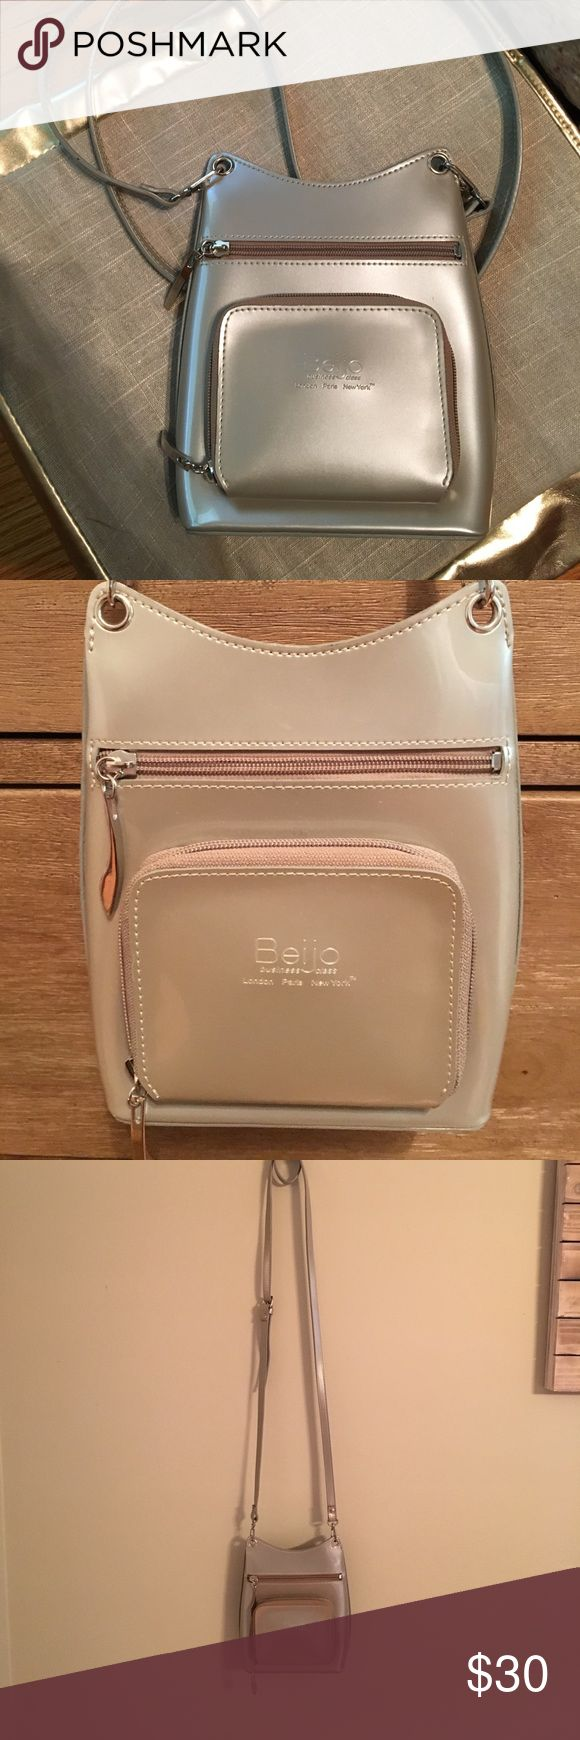 Beijo Crossbody Bag Beijo Crossbody Purse! Champagne color 🥂 with silver accents and details! Flawless, like new! Beijo Bags Crossbody Bags